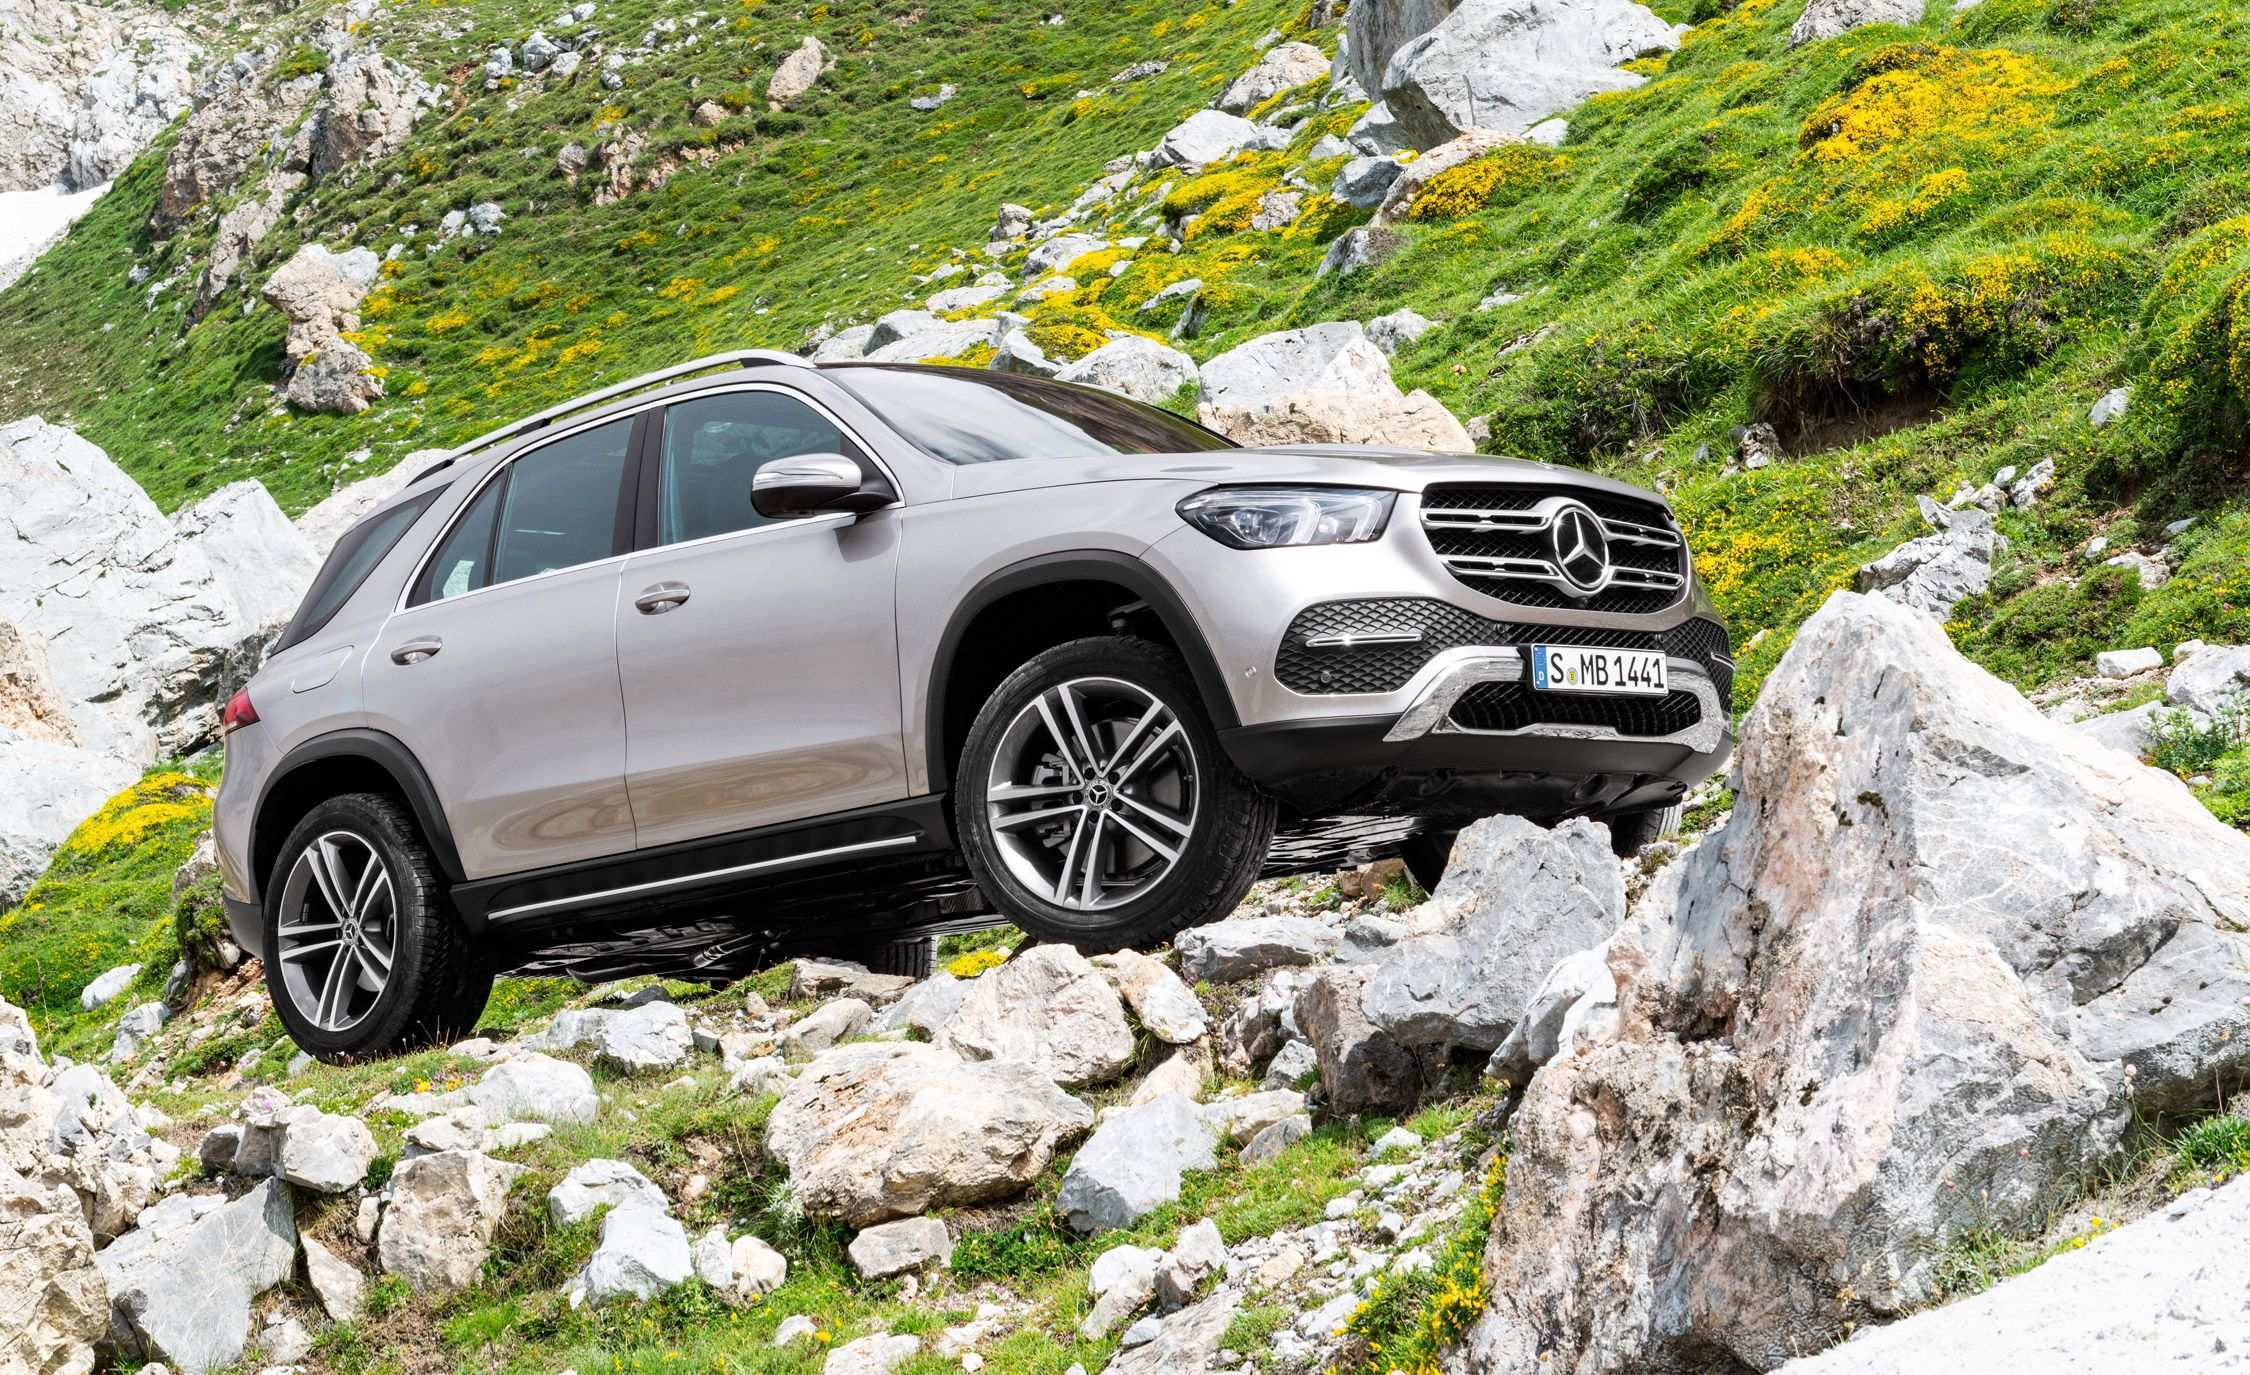 63 Gallery of Mercedes Gle 2020 Amg Ratings with Mercedes Gle 2020 Amg